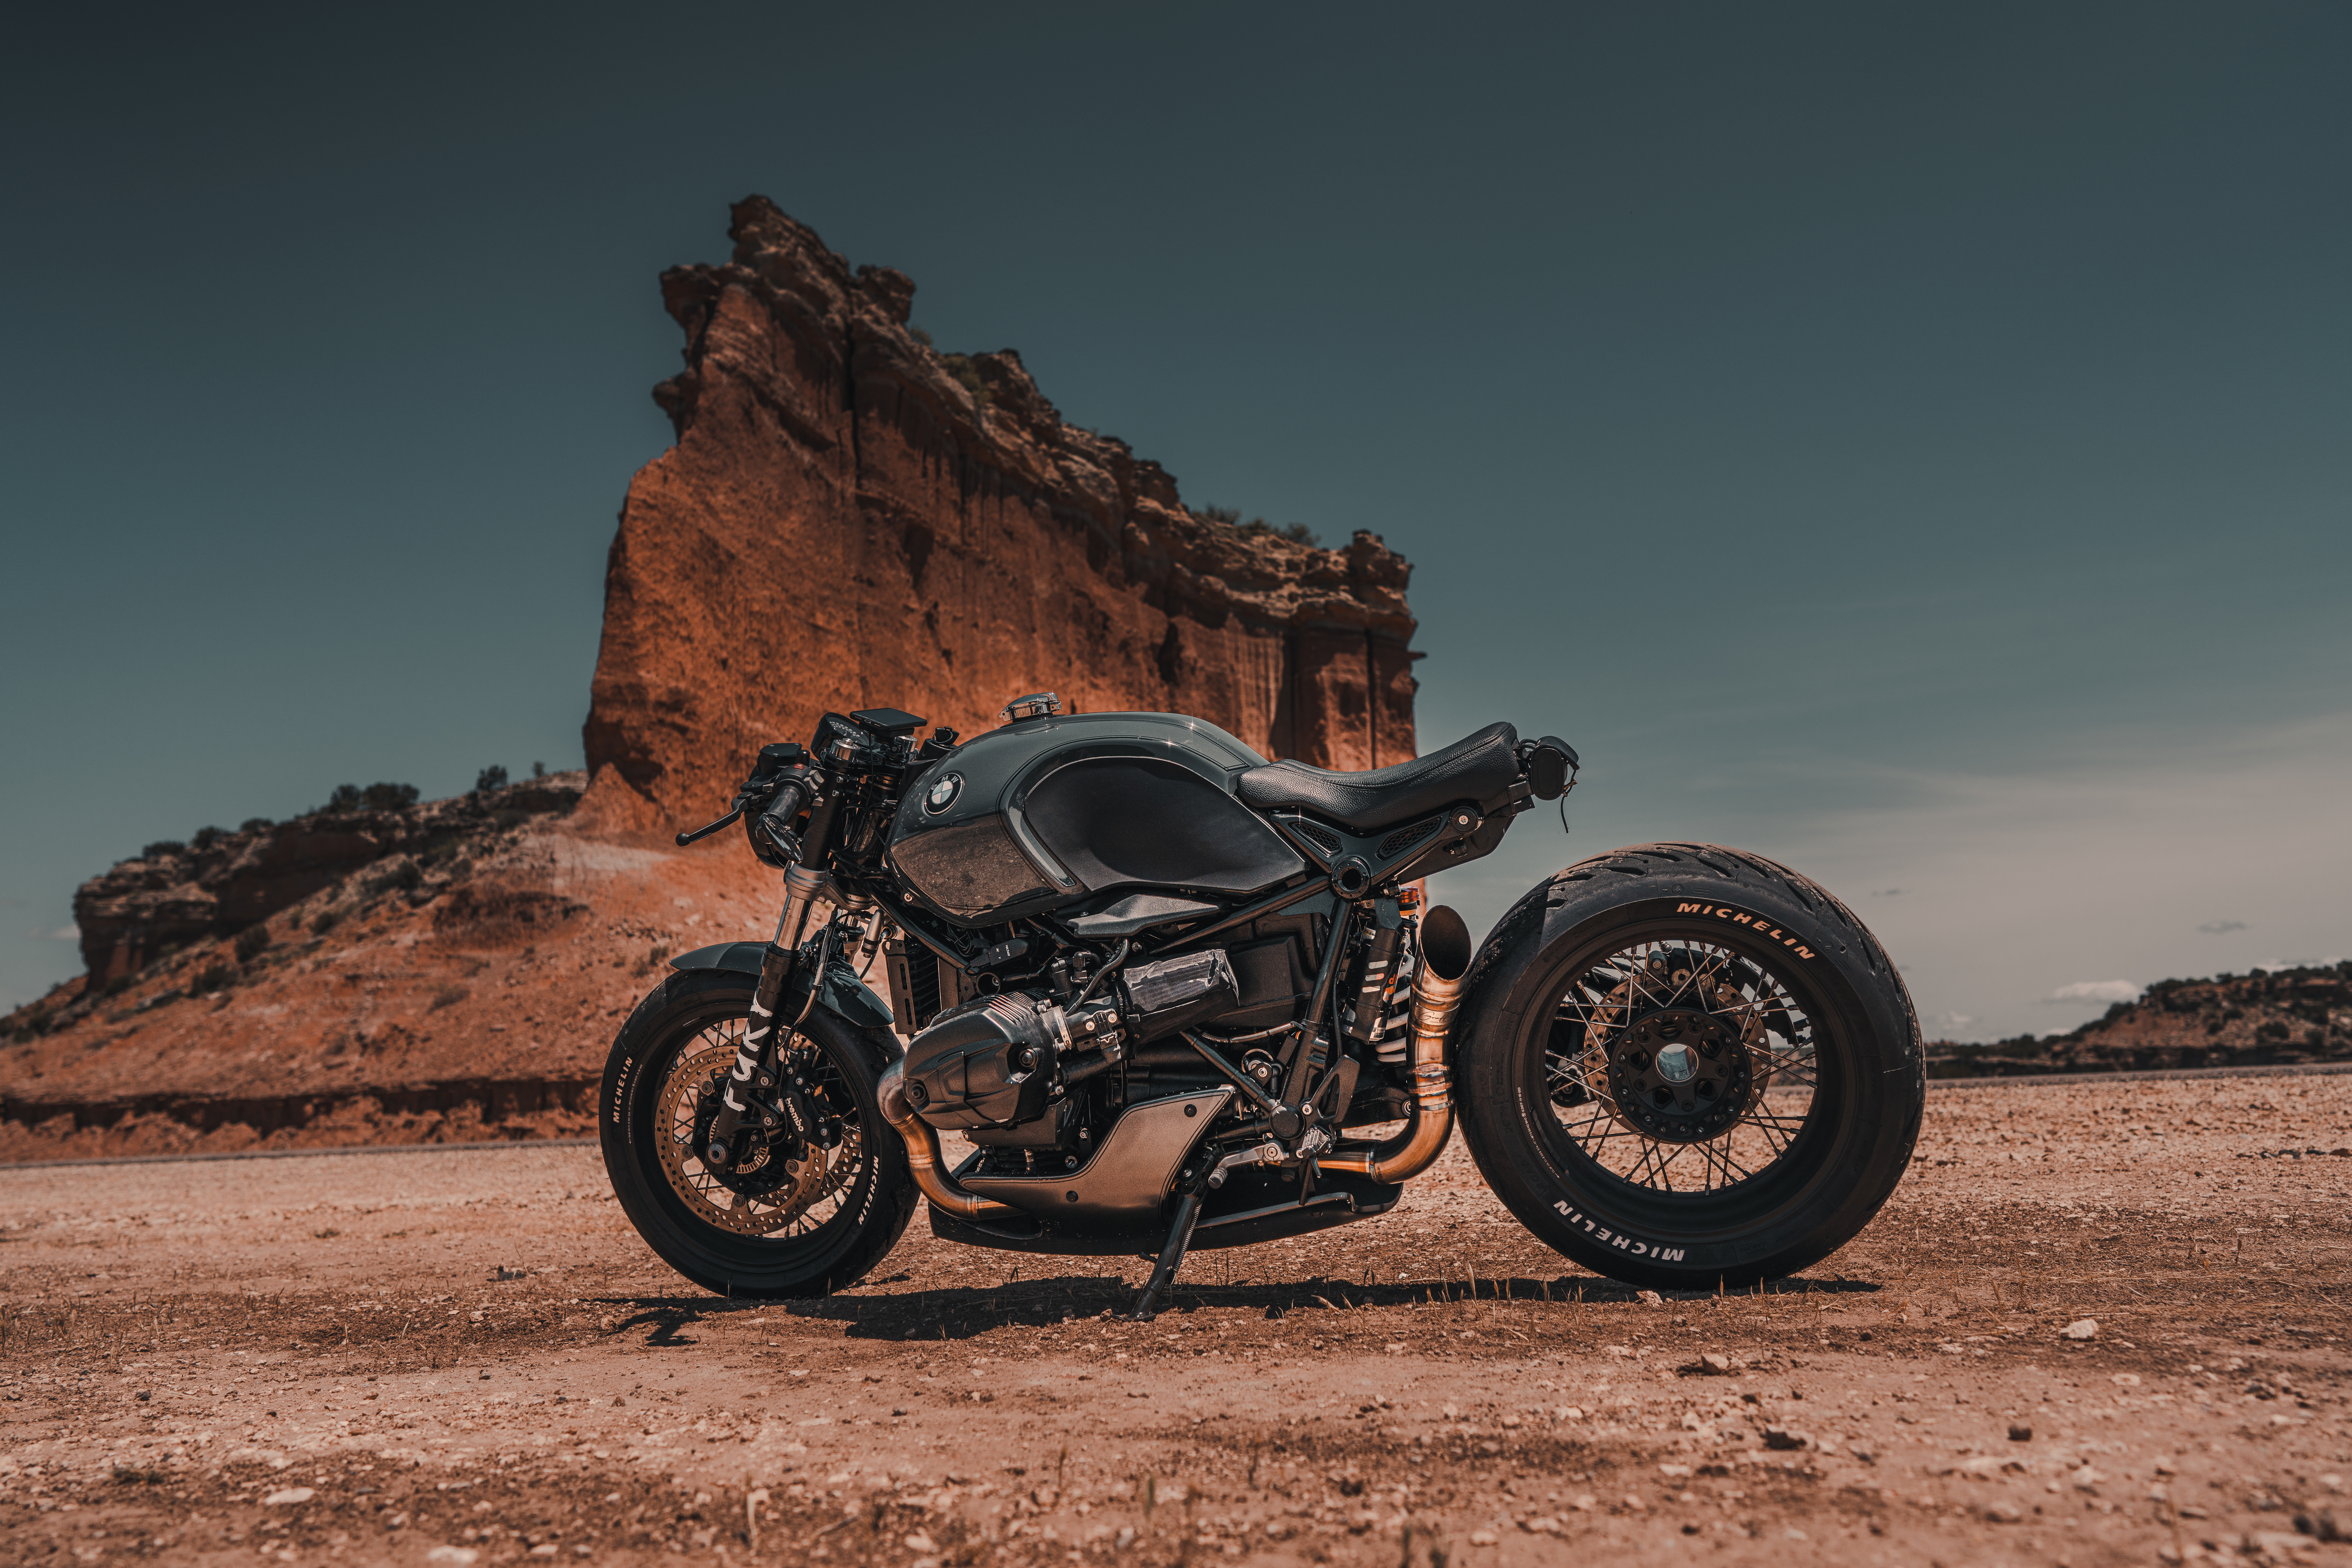 BMW R NineT at Caprock Canyons state park